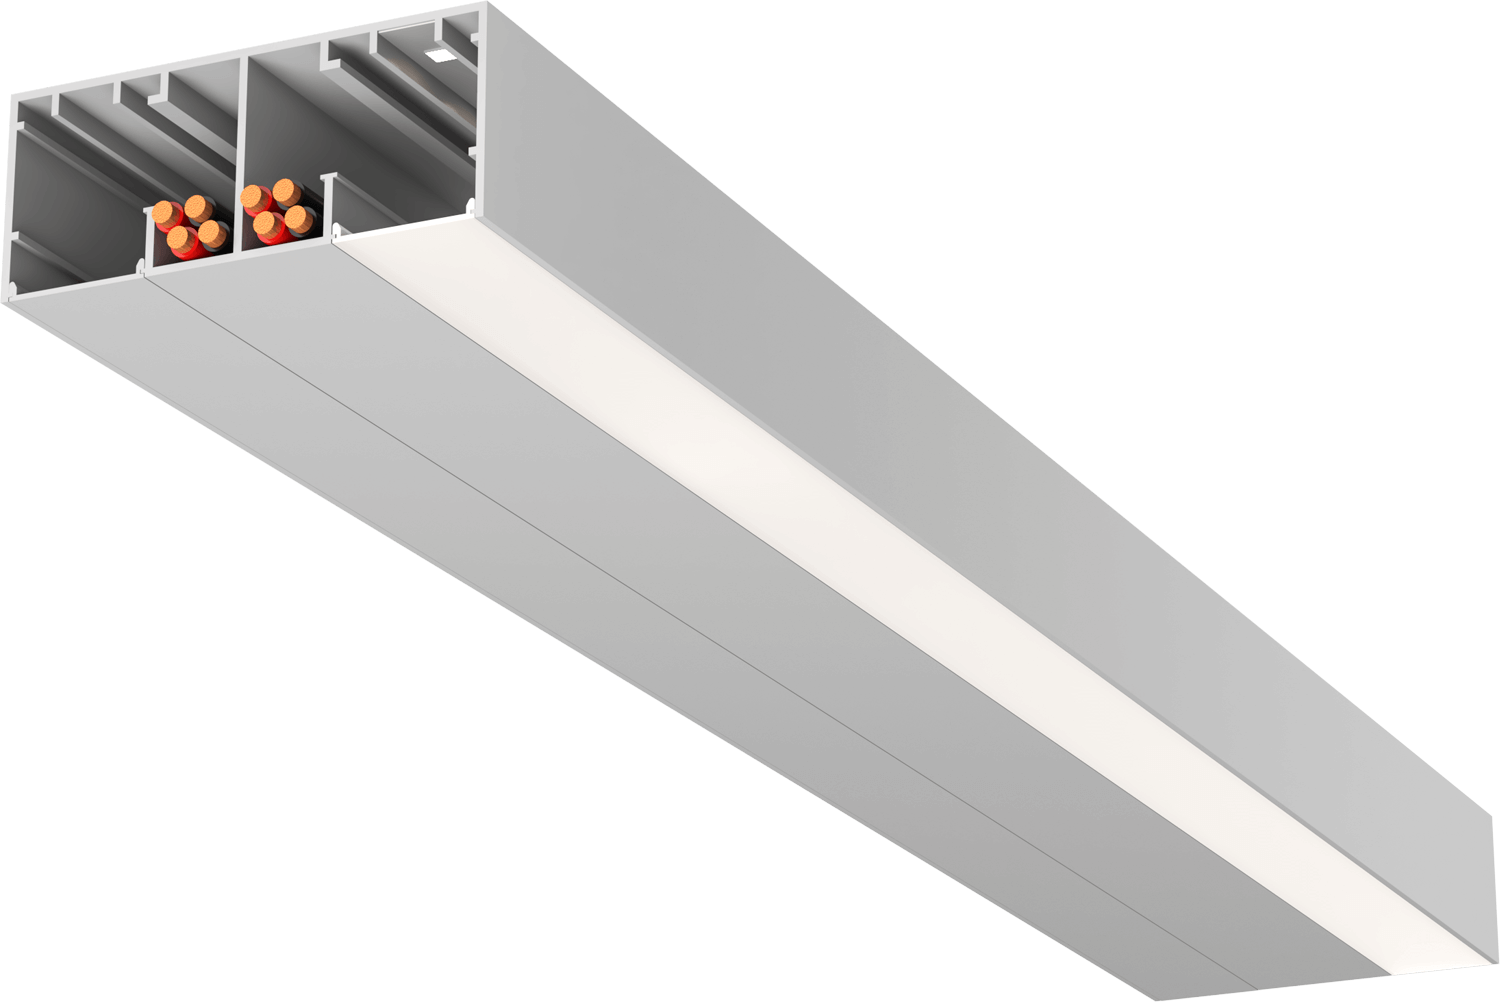 Double metal beam opened at end to reveal cable management and strip lighting as part of StruXure's TraX system